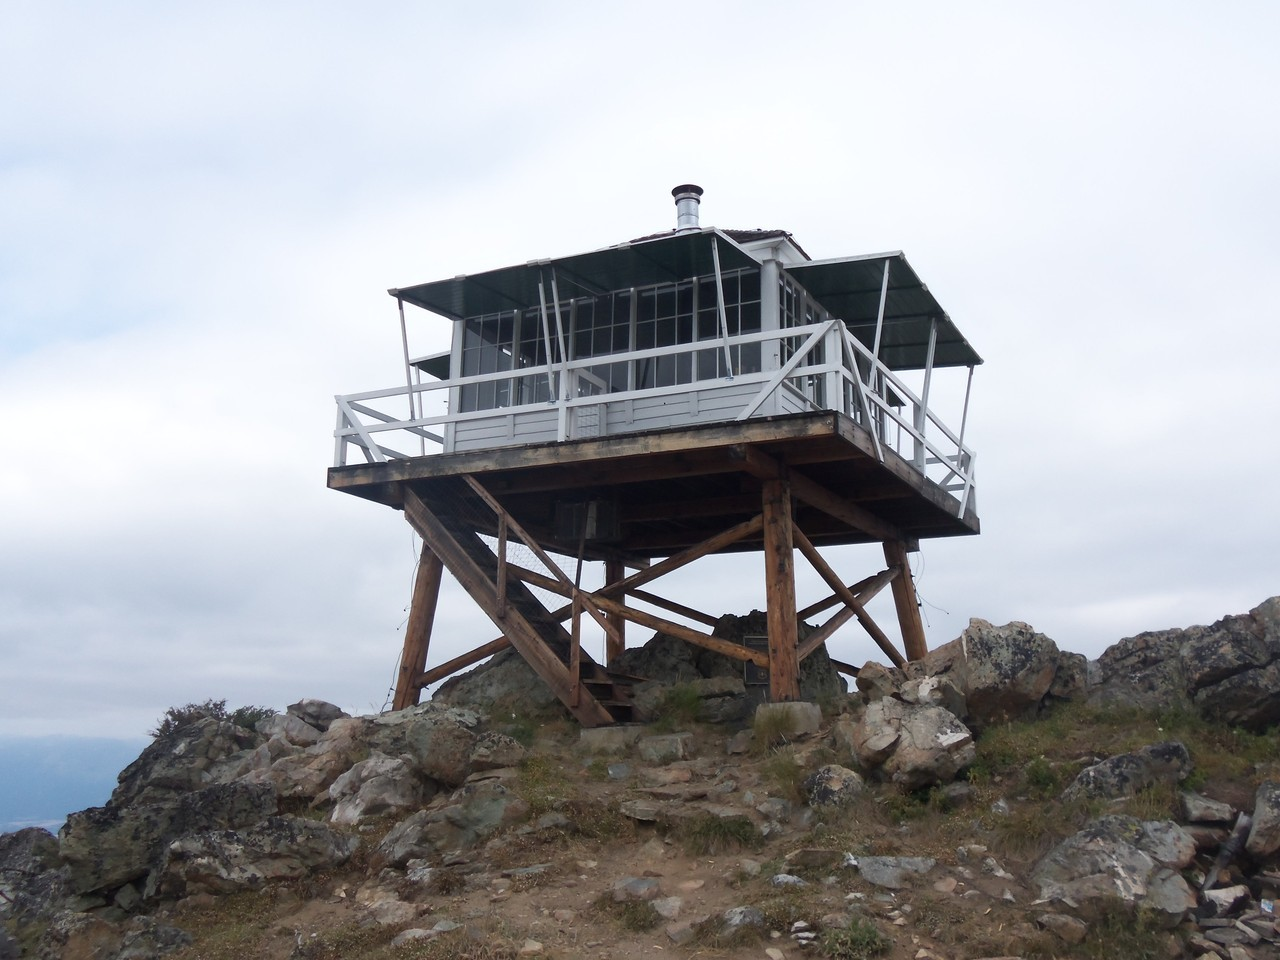 Fire lookout near Hamilton, Montana.